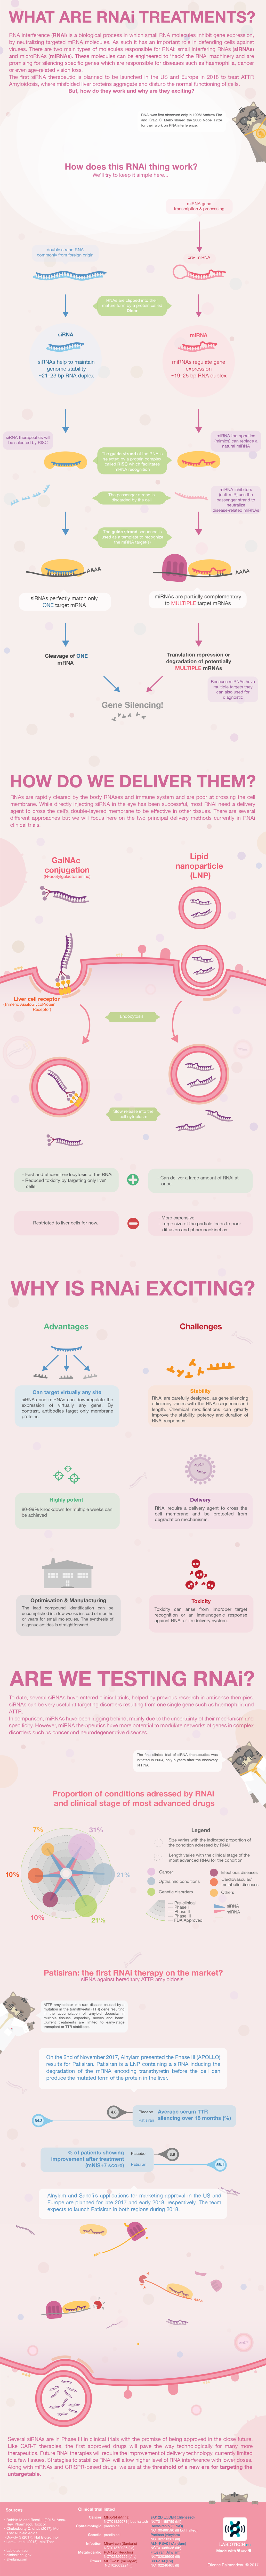 My helpful RNAi infographic